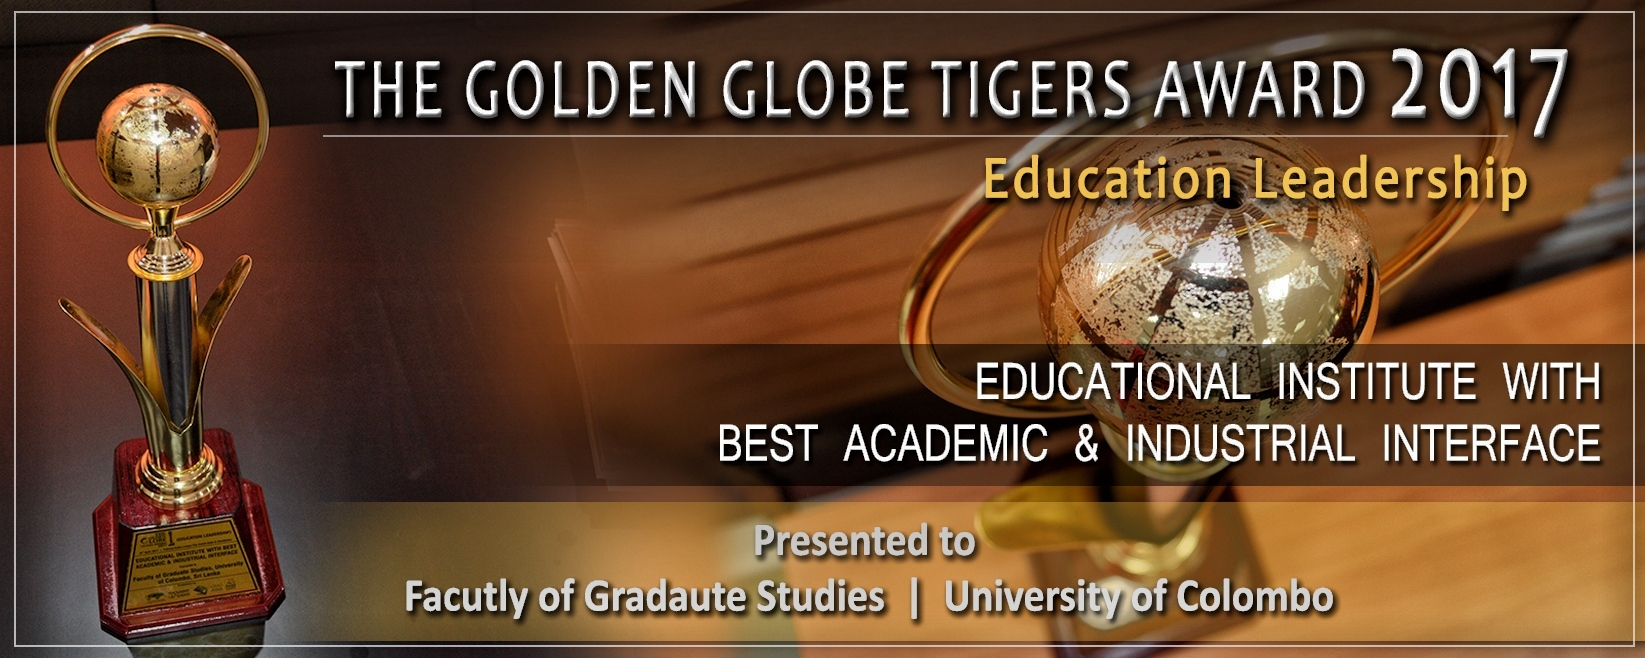 The Golden Globe Tiger Awards 2017